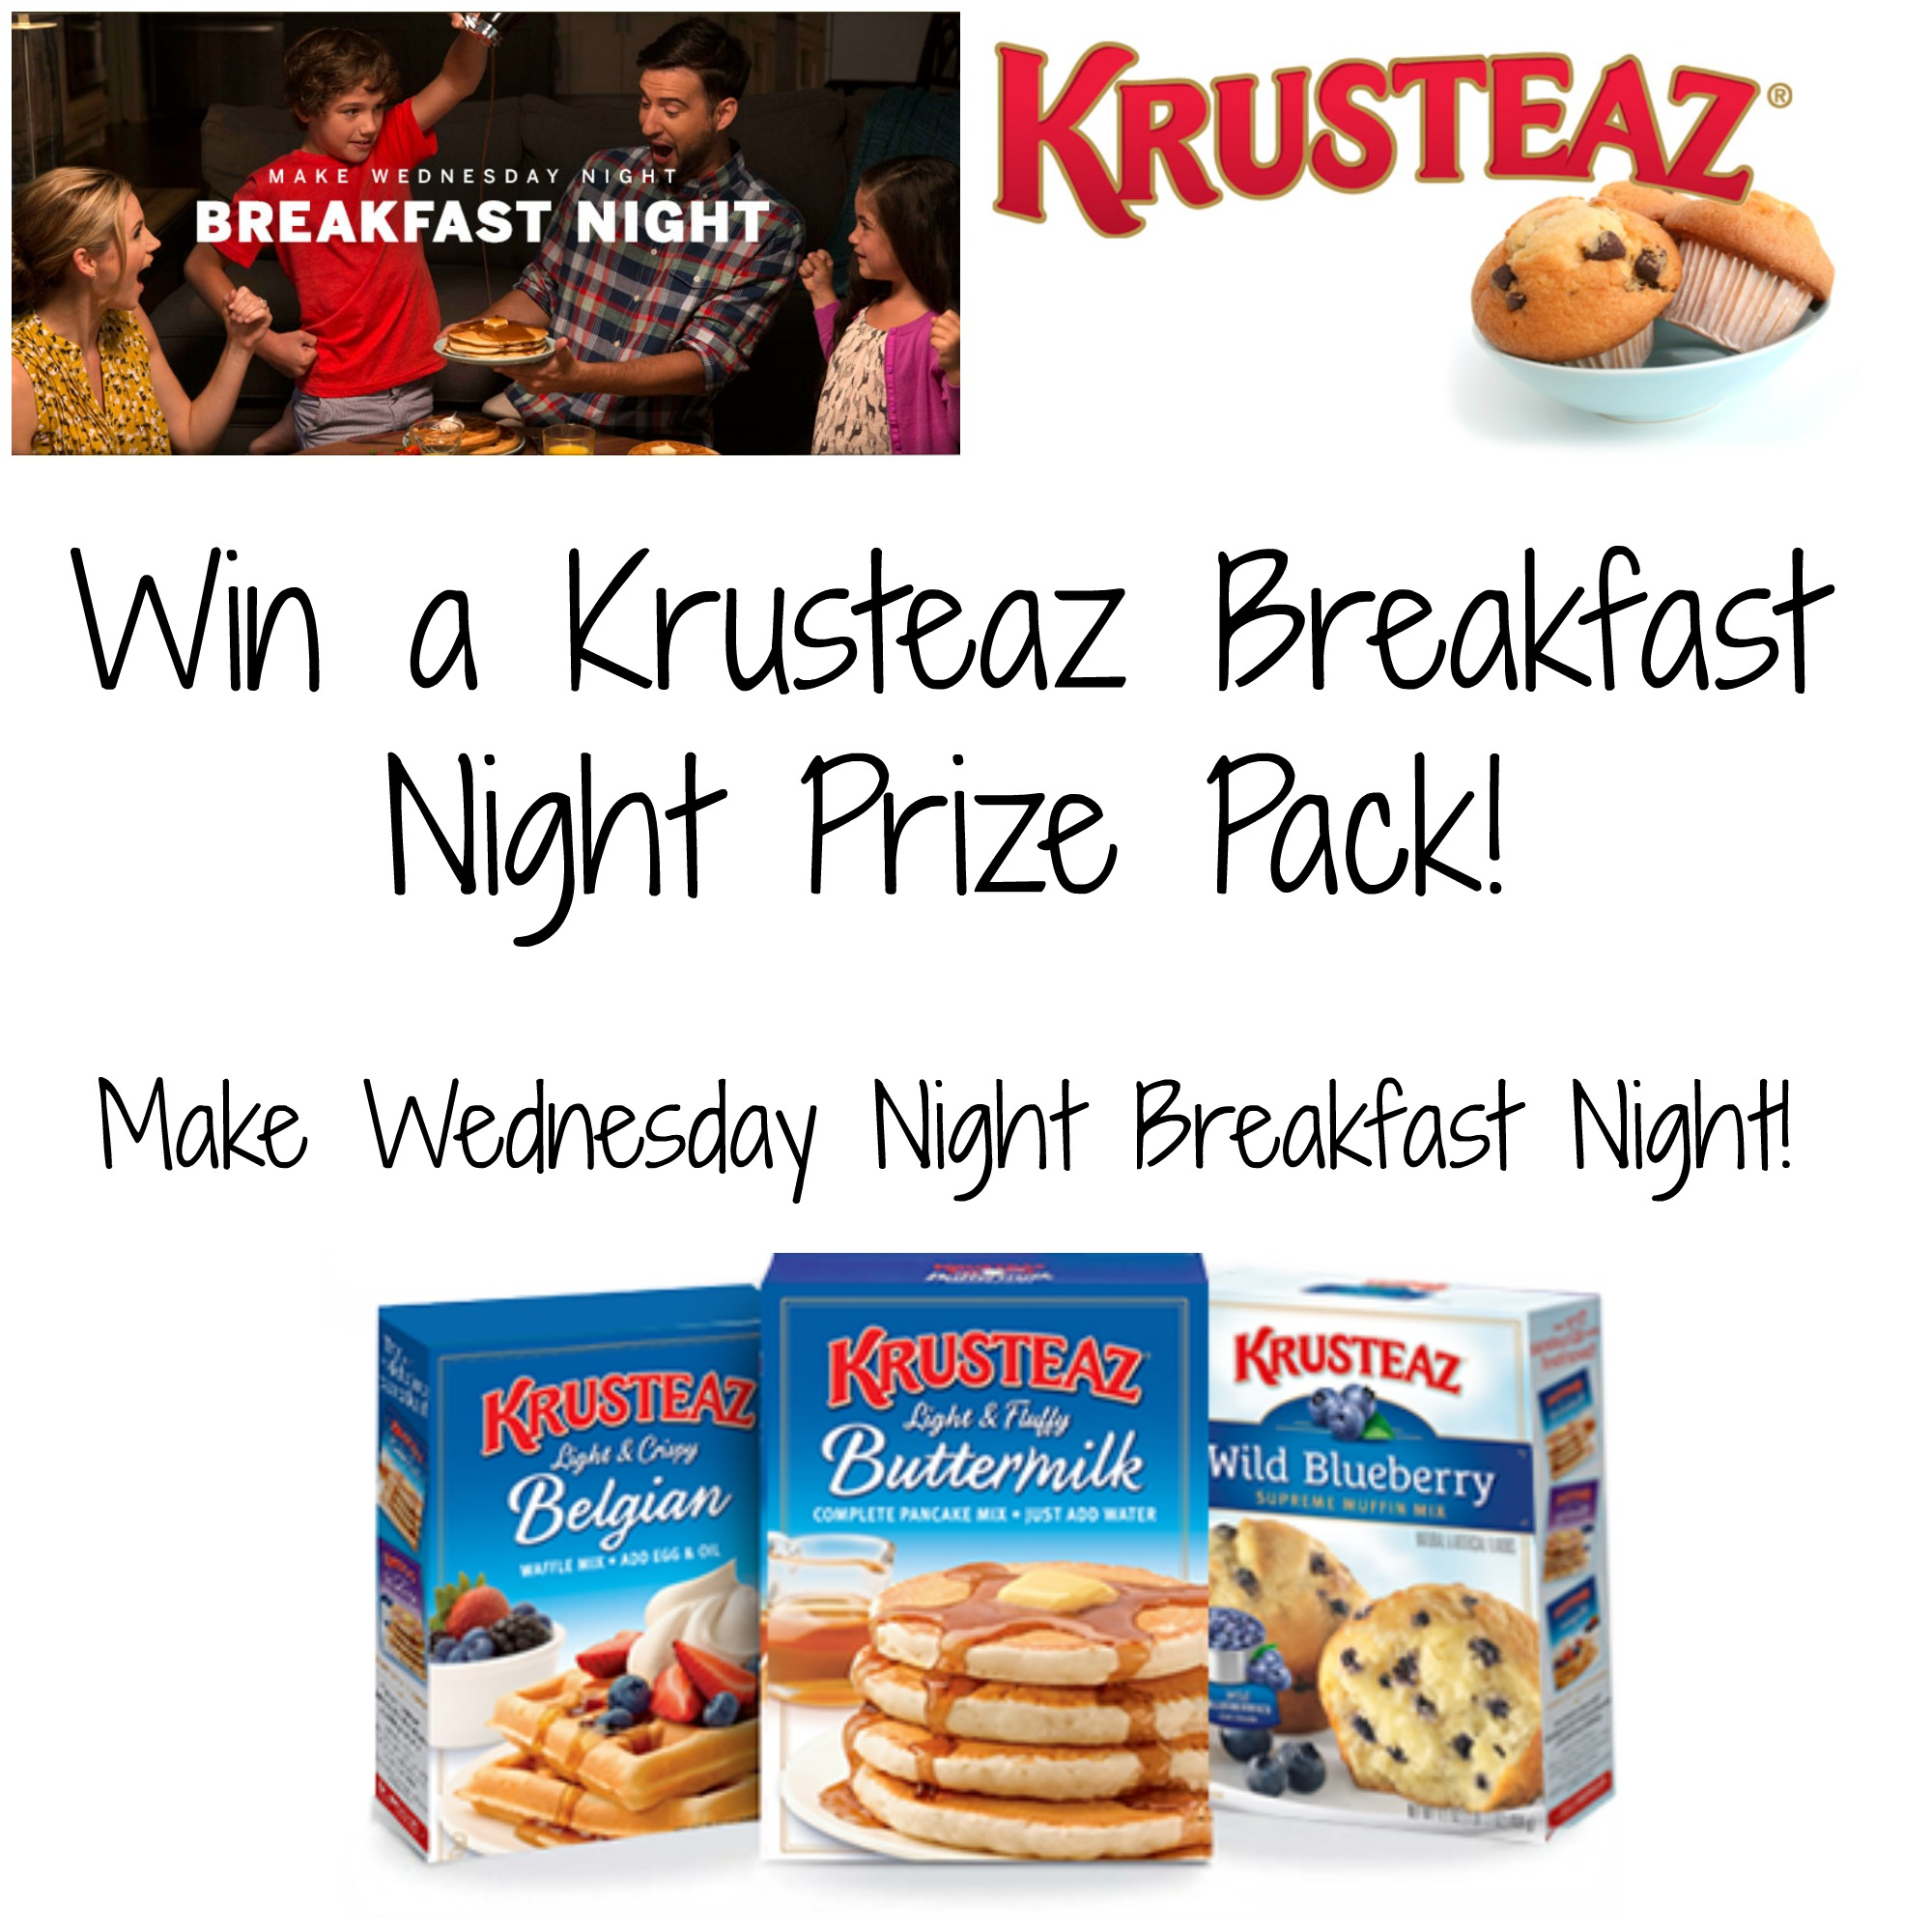 @Krusteaz #BreakfastNight is the Best!